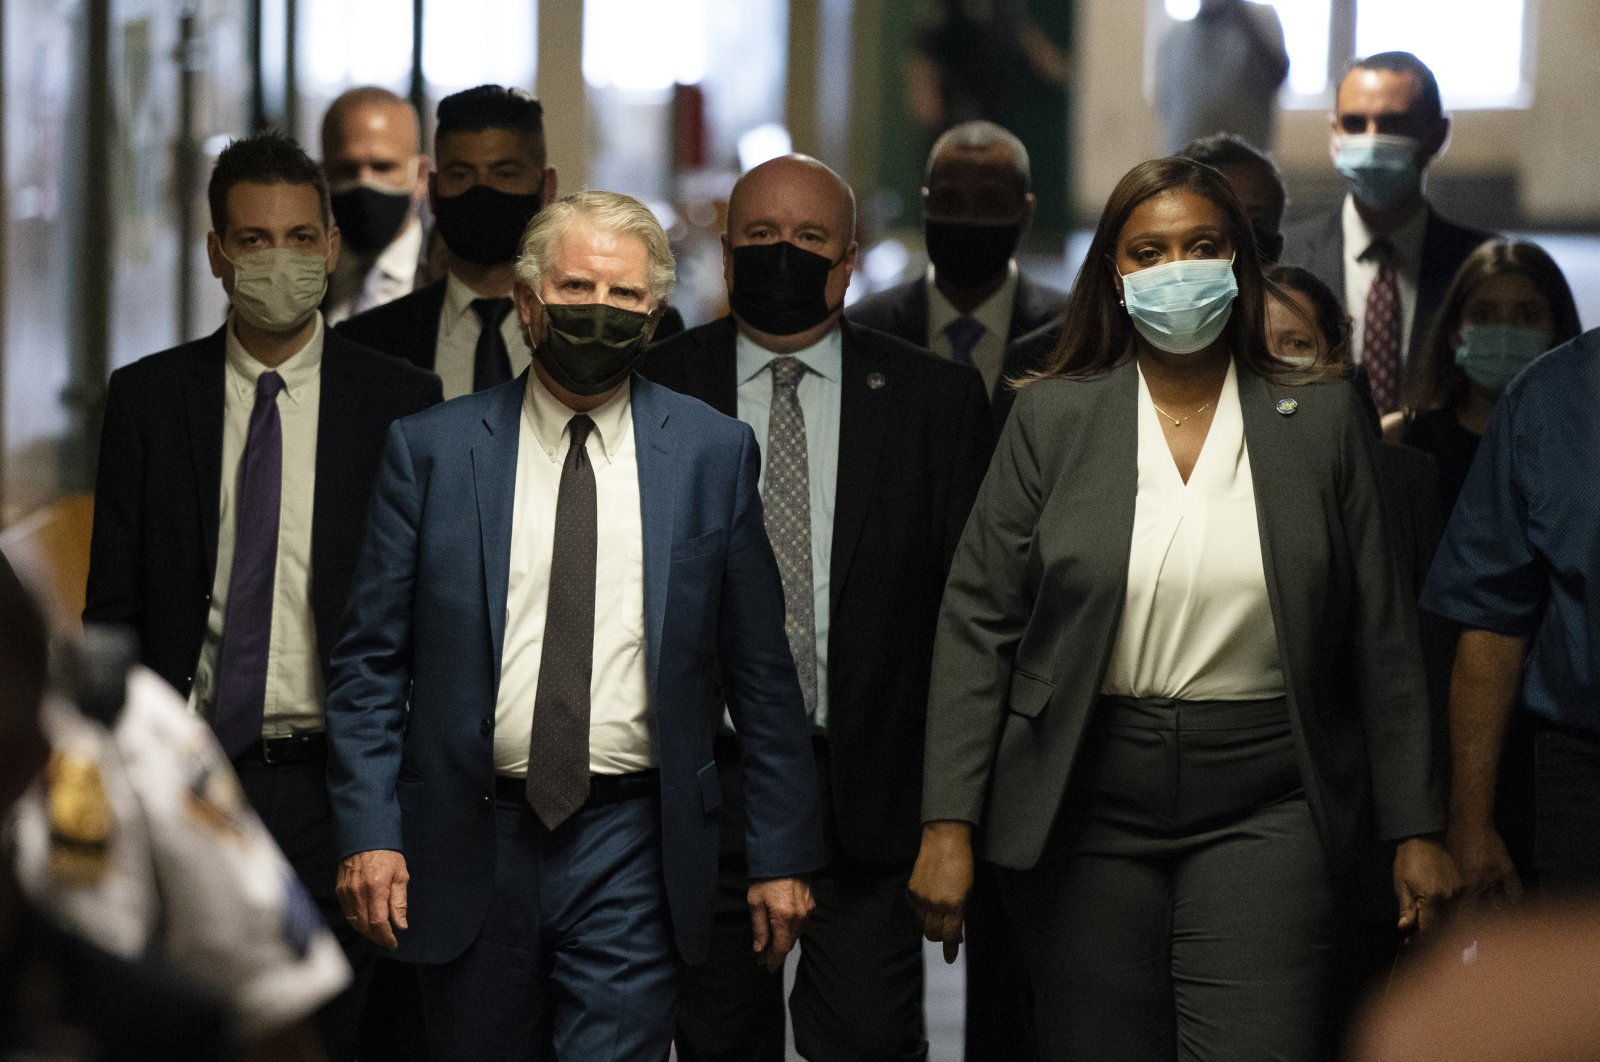 New York County District Attorney Cyrus Vance Jr. (L) and Attorney General of New York Letitia James (R) arrive at New York State Supreme Court, New York, July 1, 2021. (AP Photo)